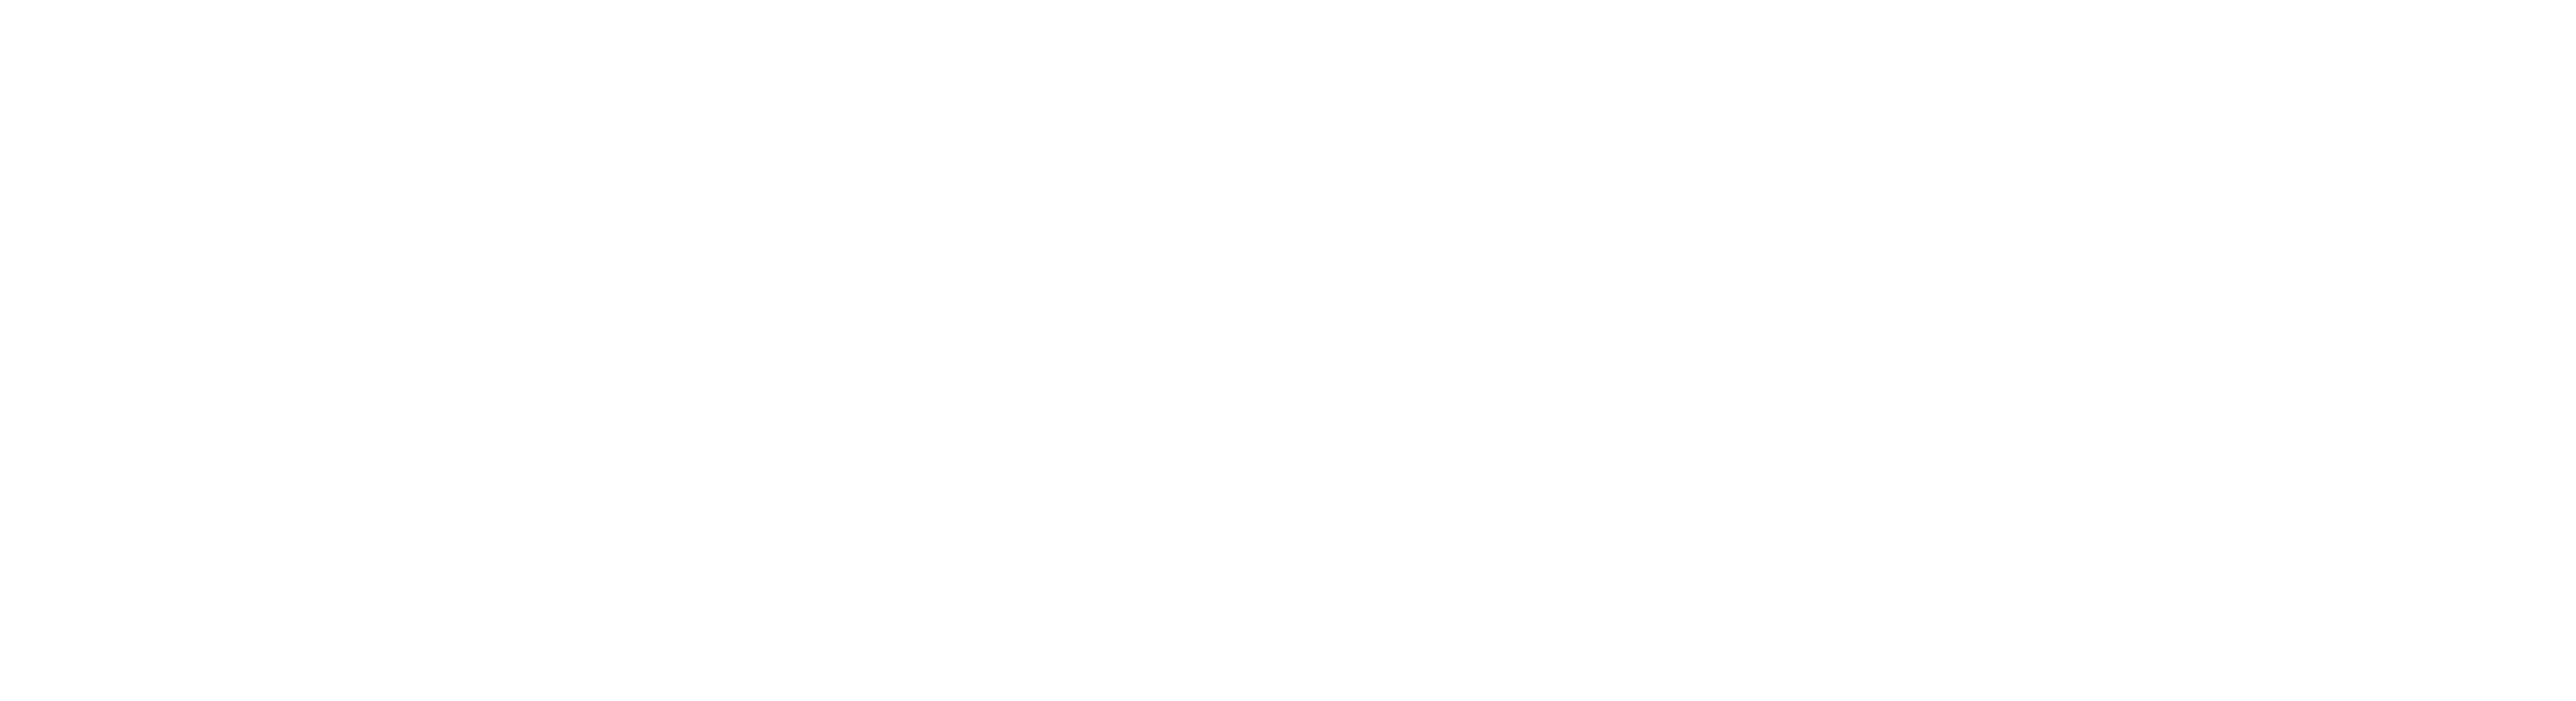 Hentges Tree Service in Jefferson City, Missouri